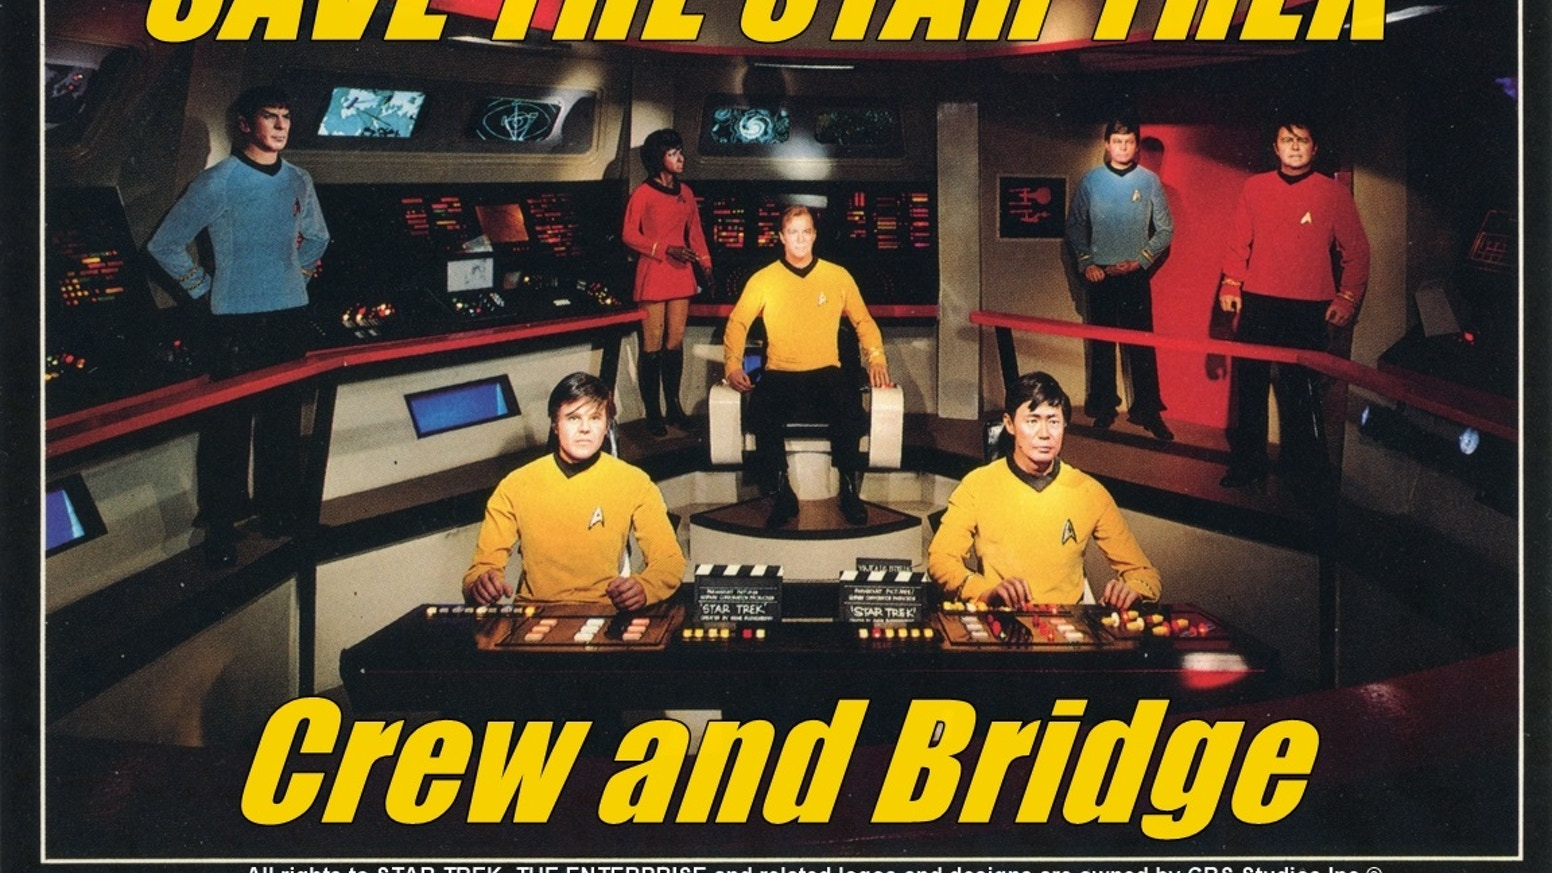 Restoring all seven 1970's Movieland Star Trek Enterprise wax figures and set, for the Hollywood Science Fiction Museum world tour.